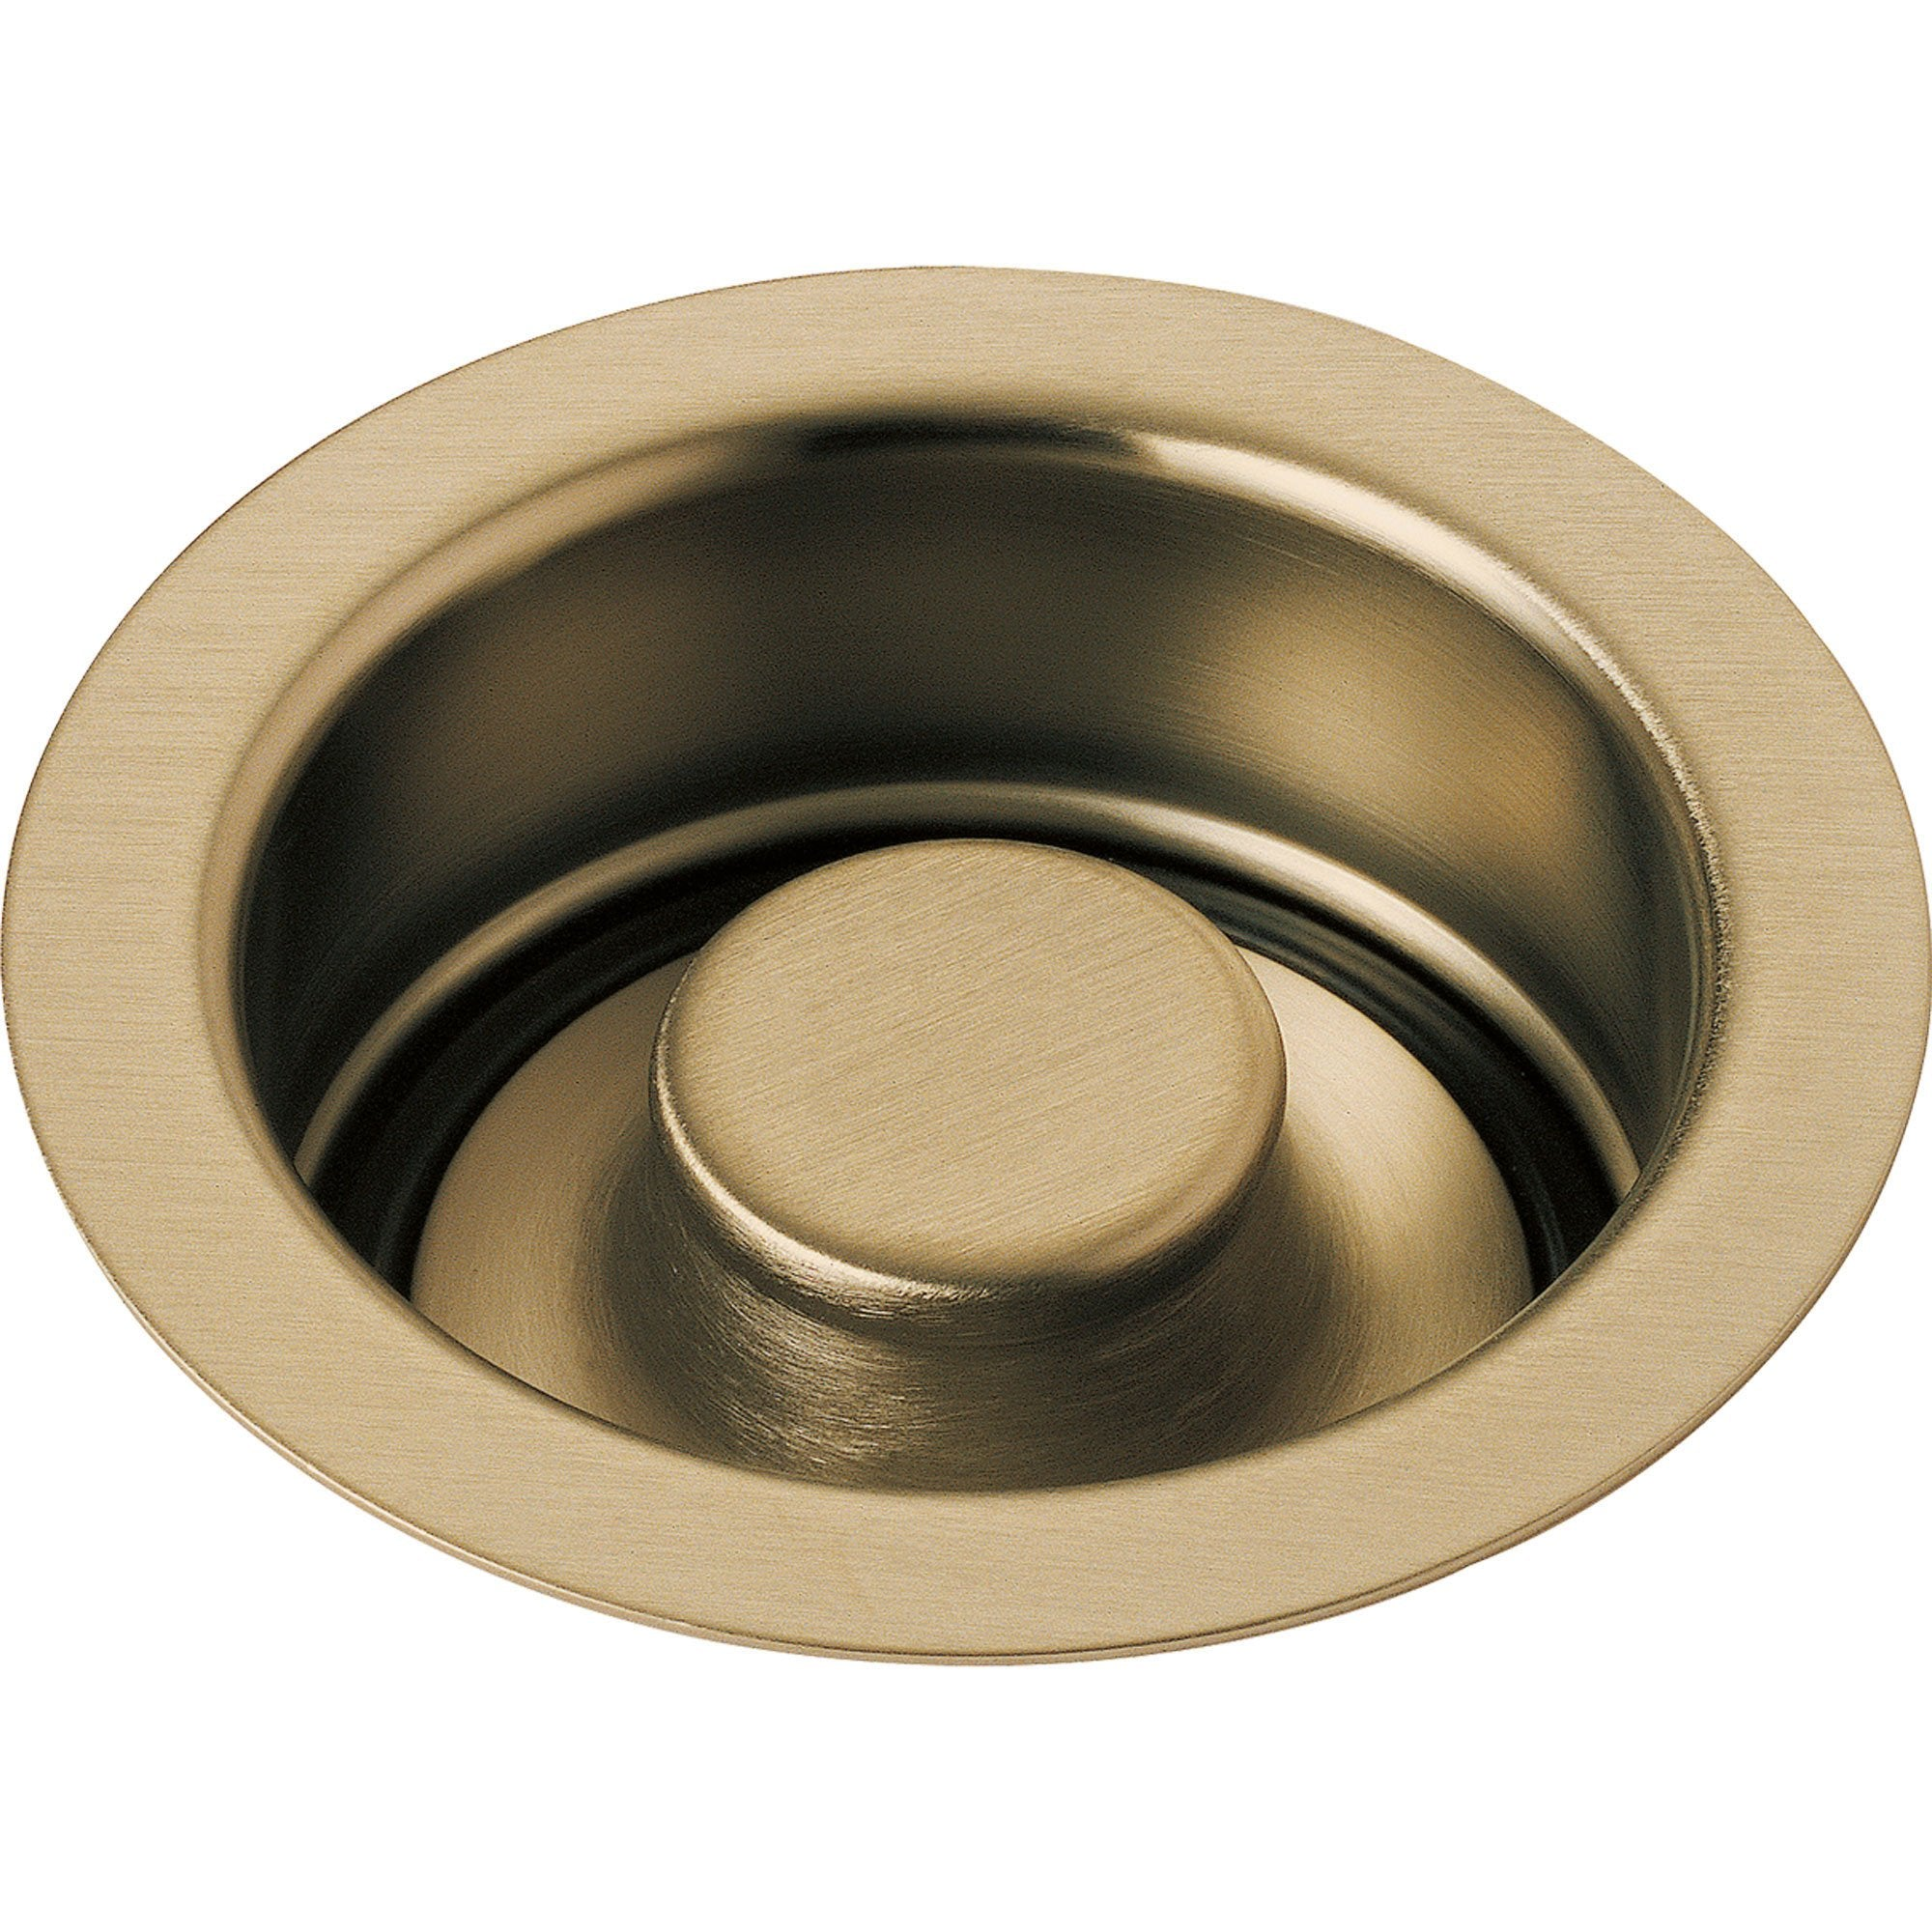 "Delta 4-1/2"" Champagne Bronze Kitchen Sink Disposal Flange and Stopper 638411"